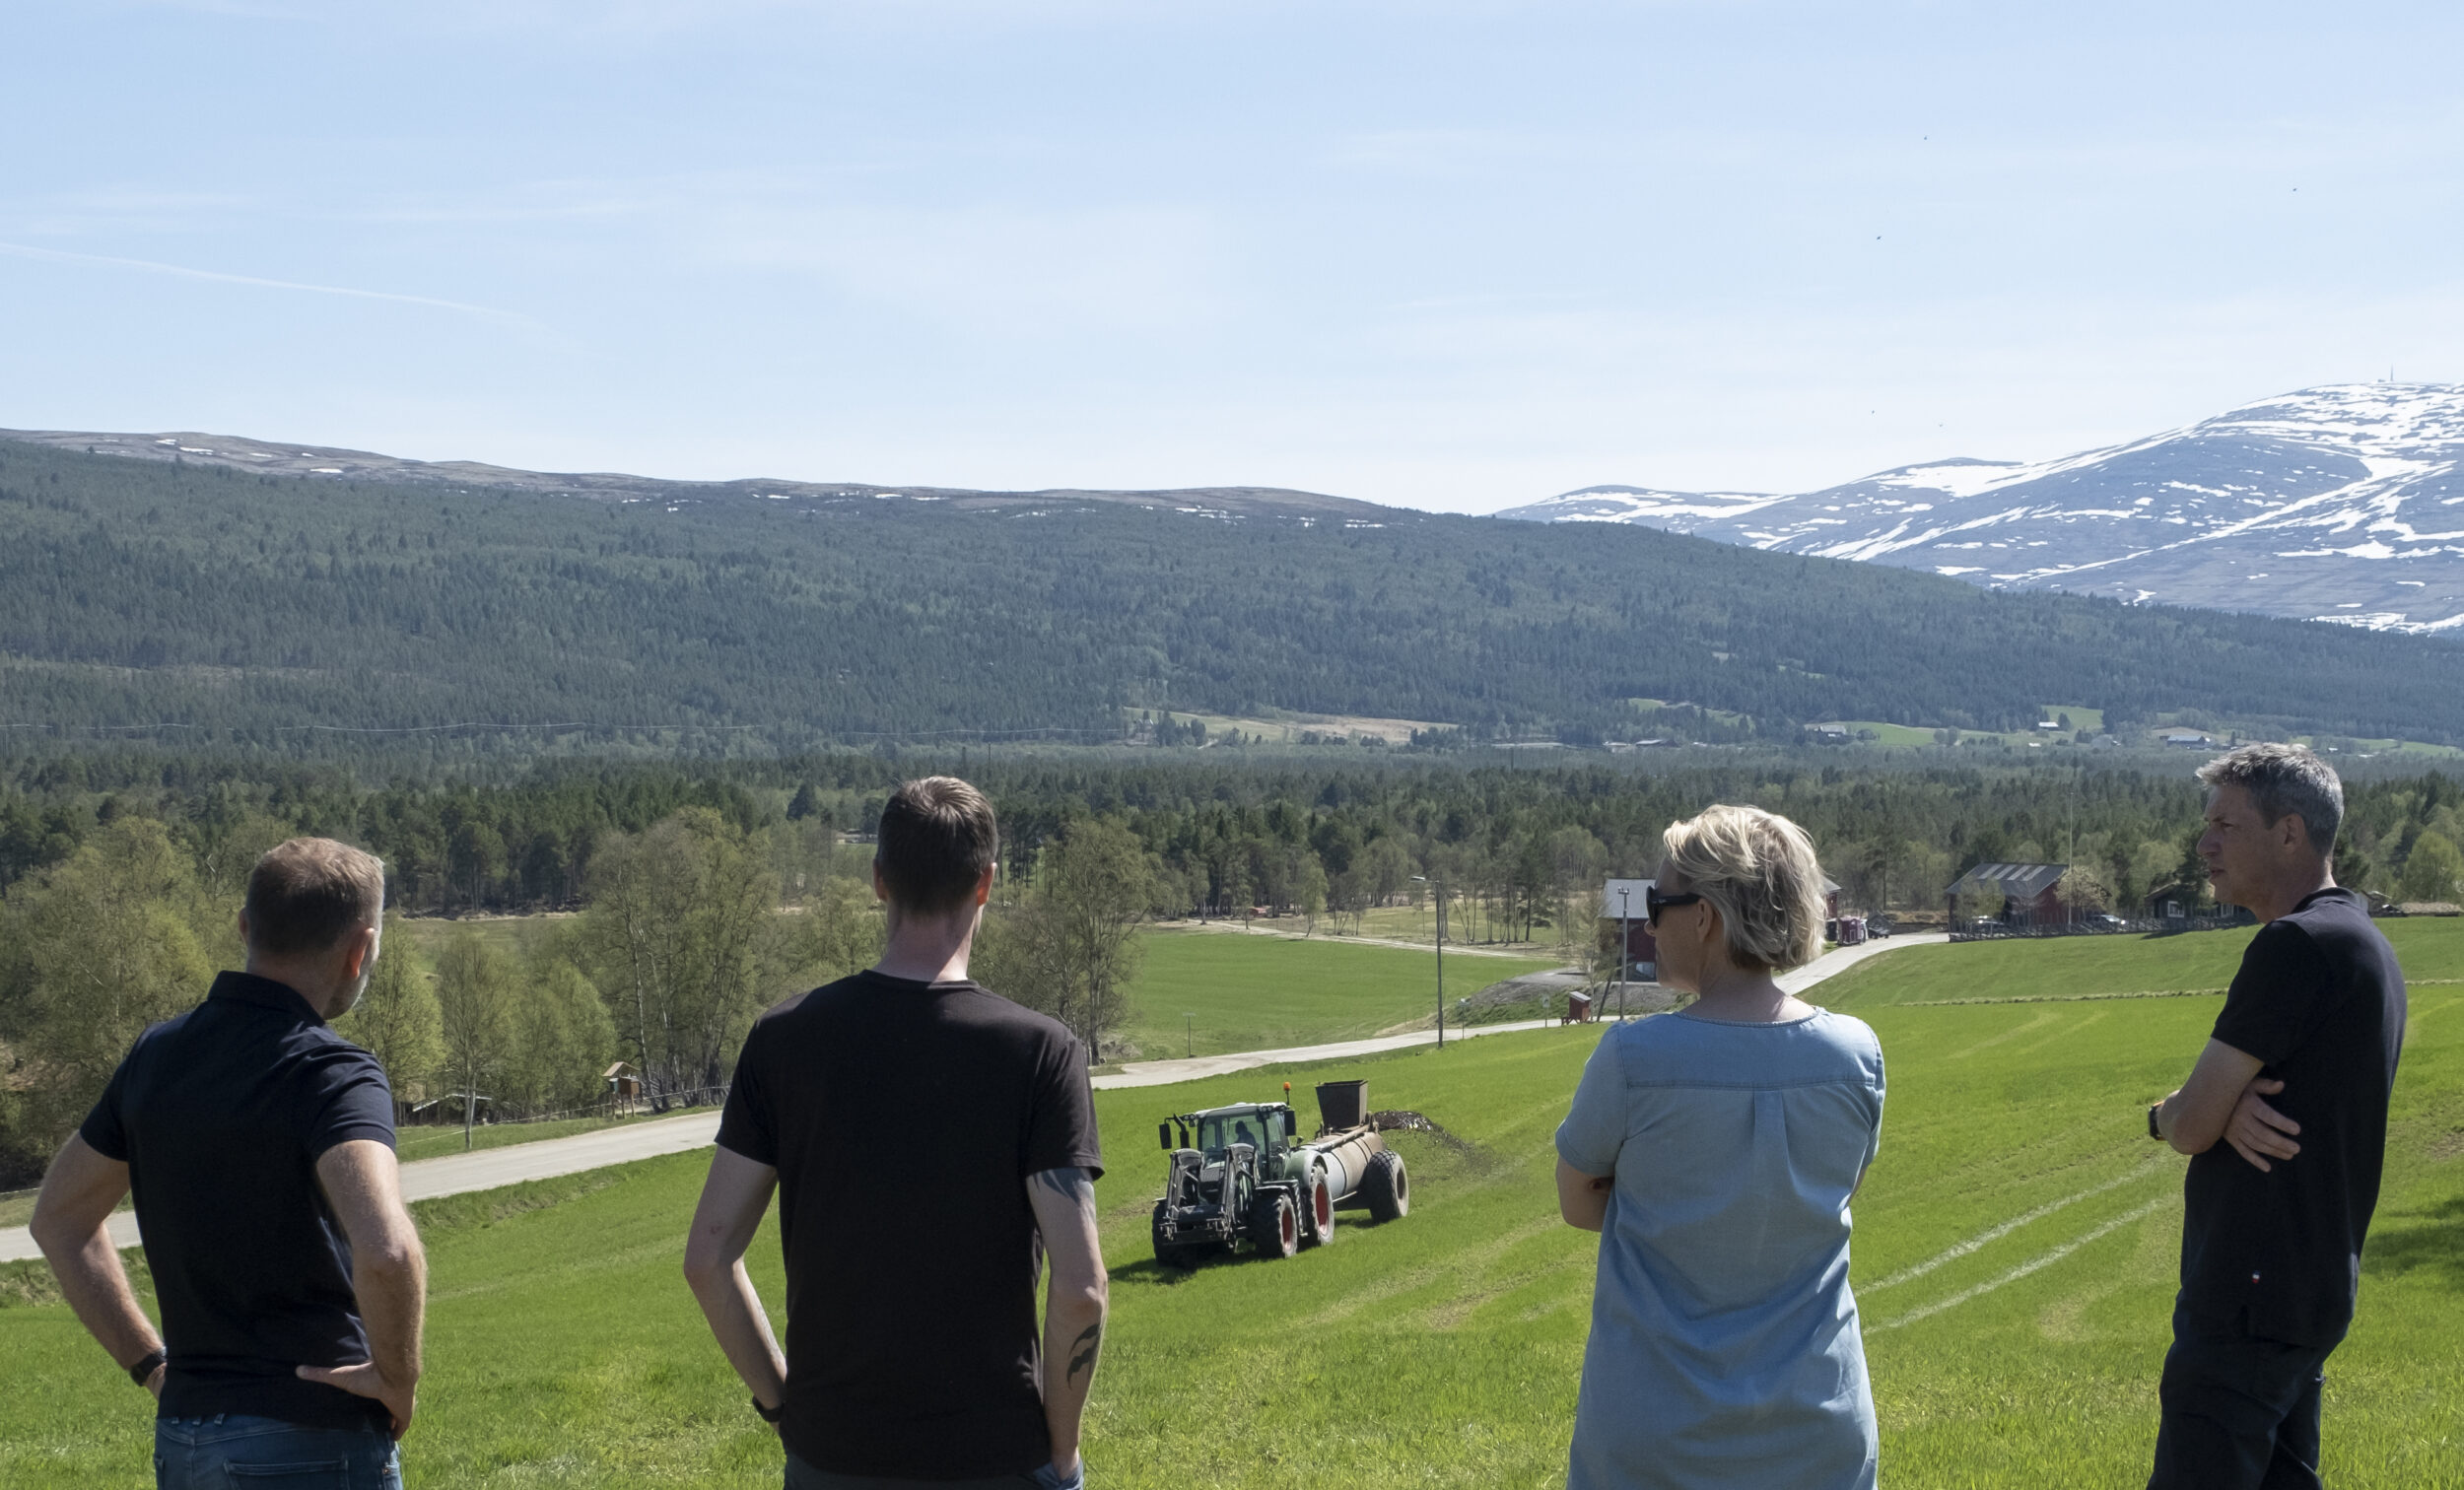 Looking out on Galåvolden Gård